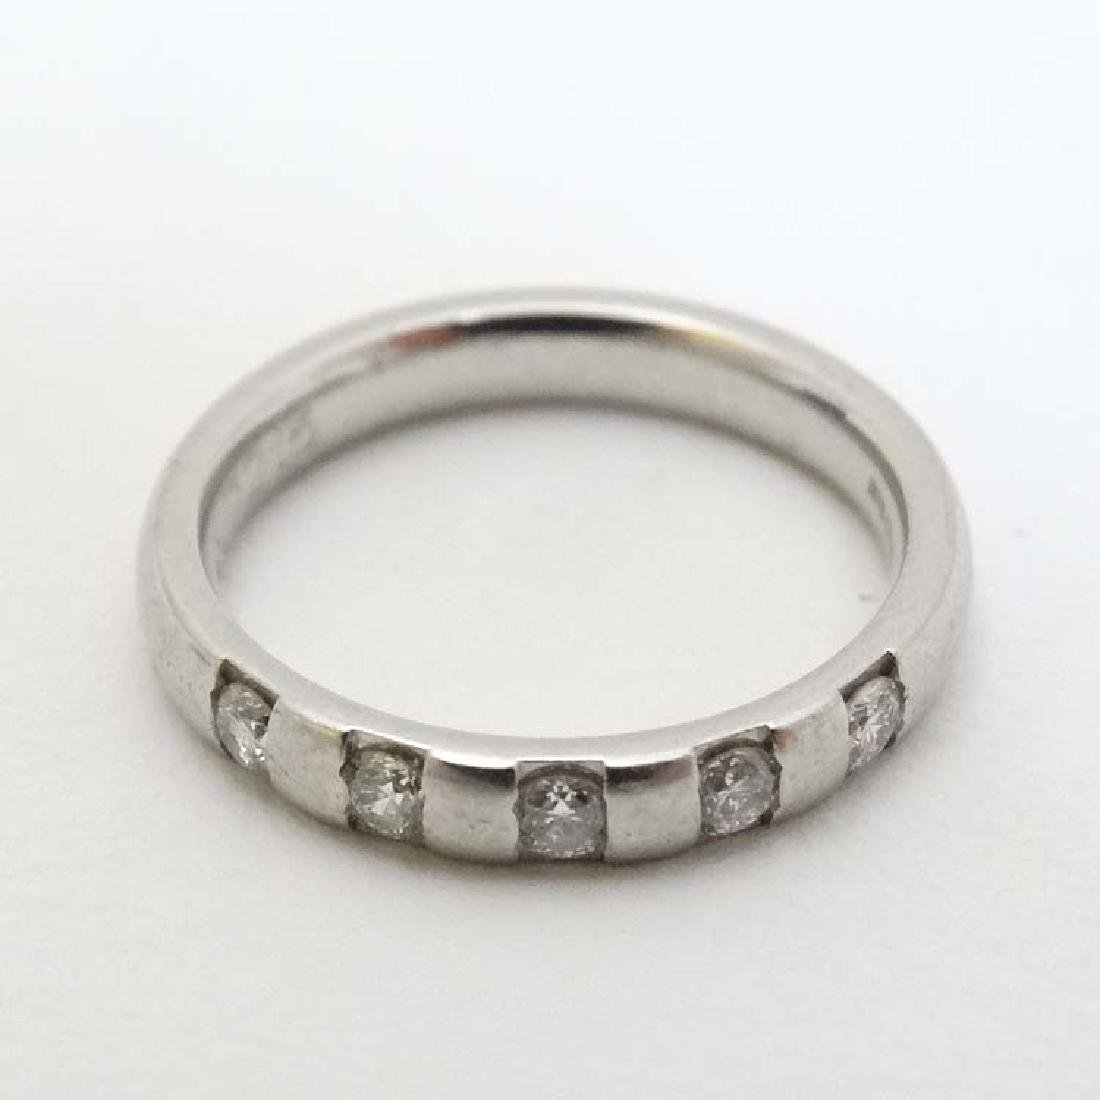 A platinum ring set with 5 diamonds